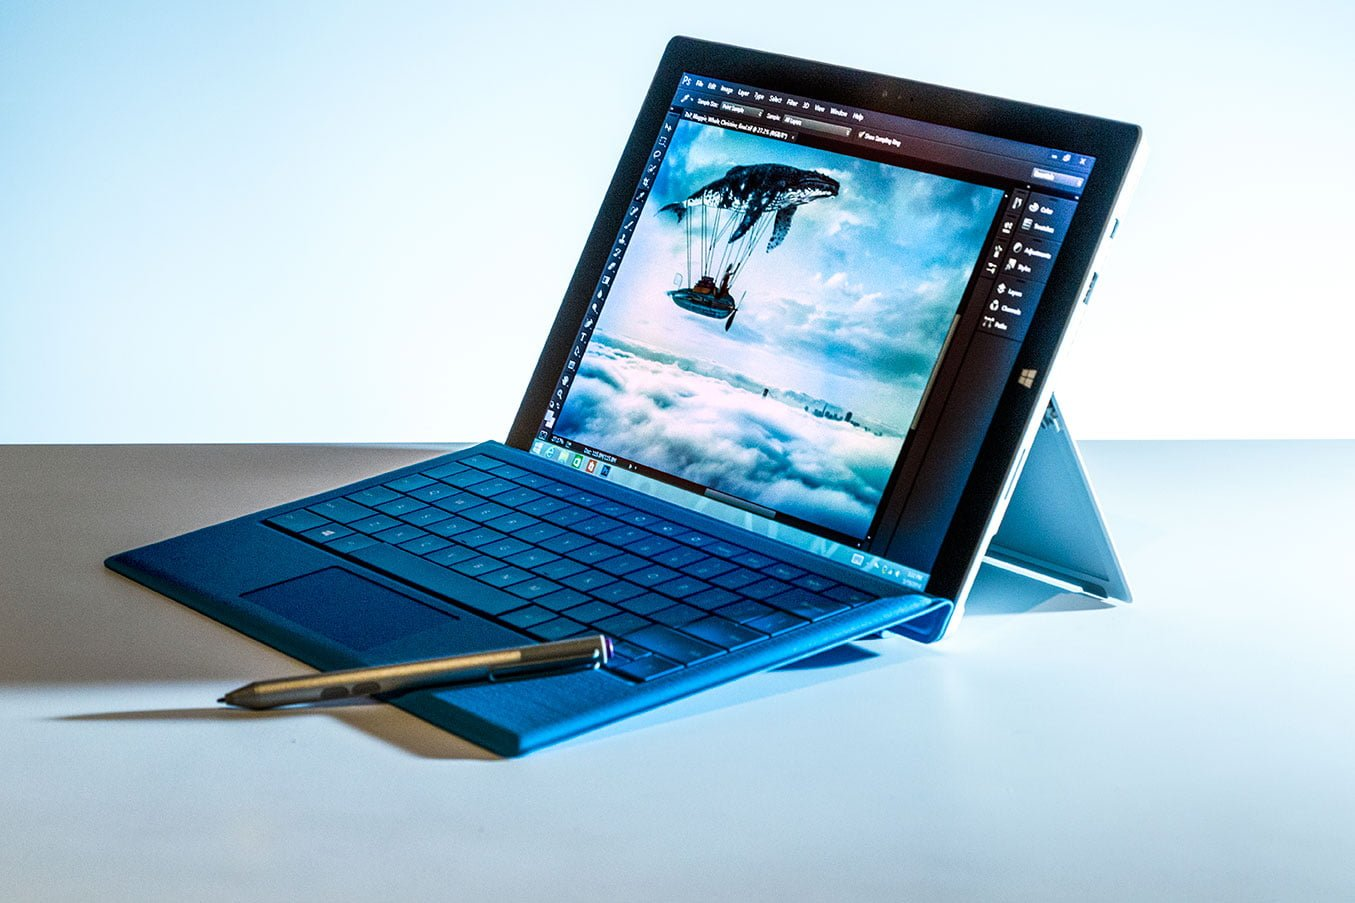 First Surface Pro 3 Commercial Debuts